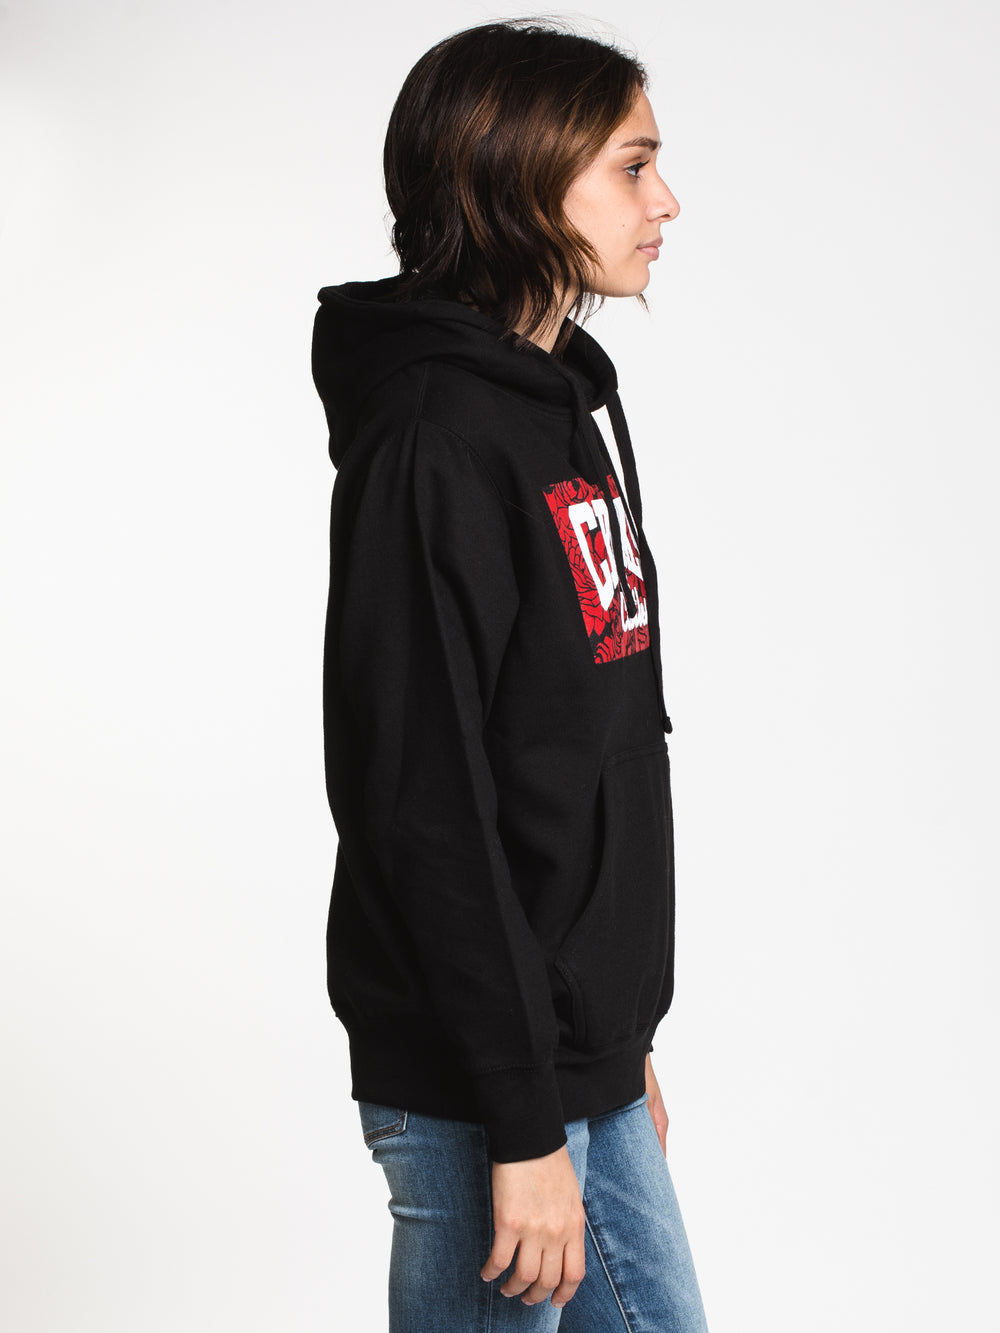 WOMENS ROSES CORE LOGO PULL OVER HD - BLK